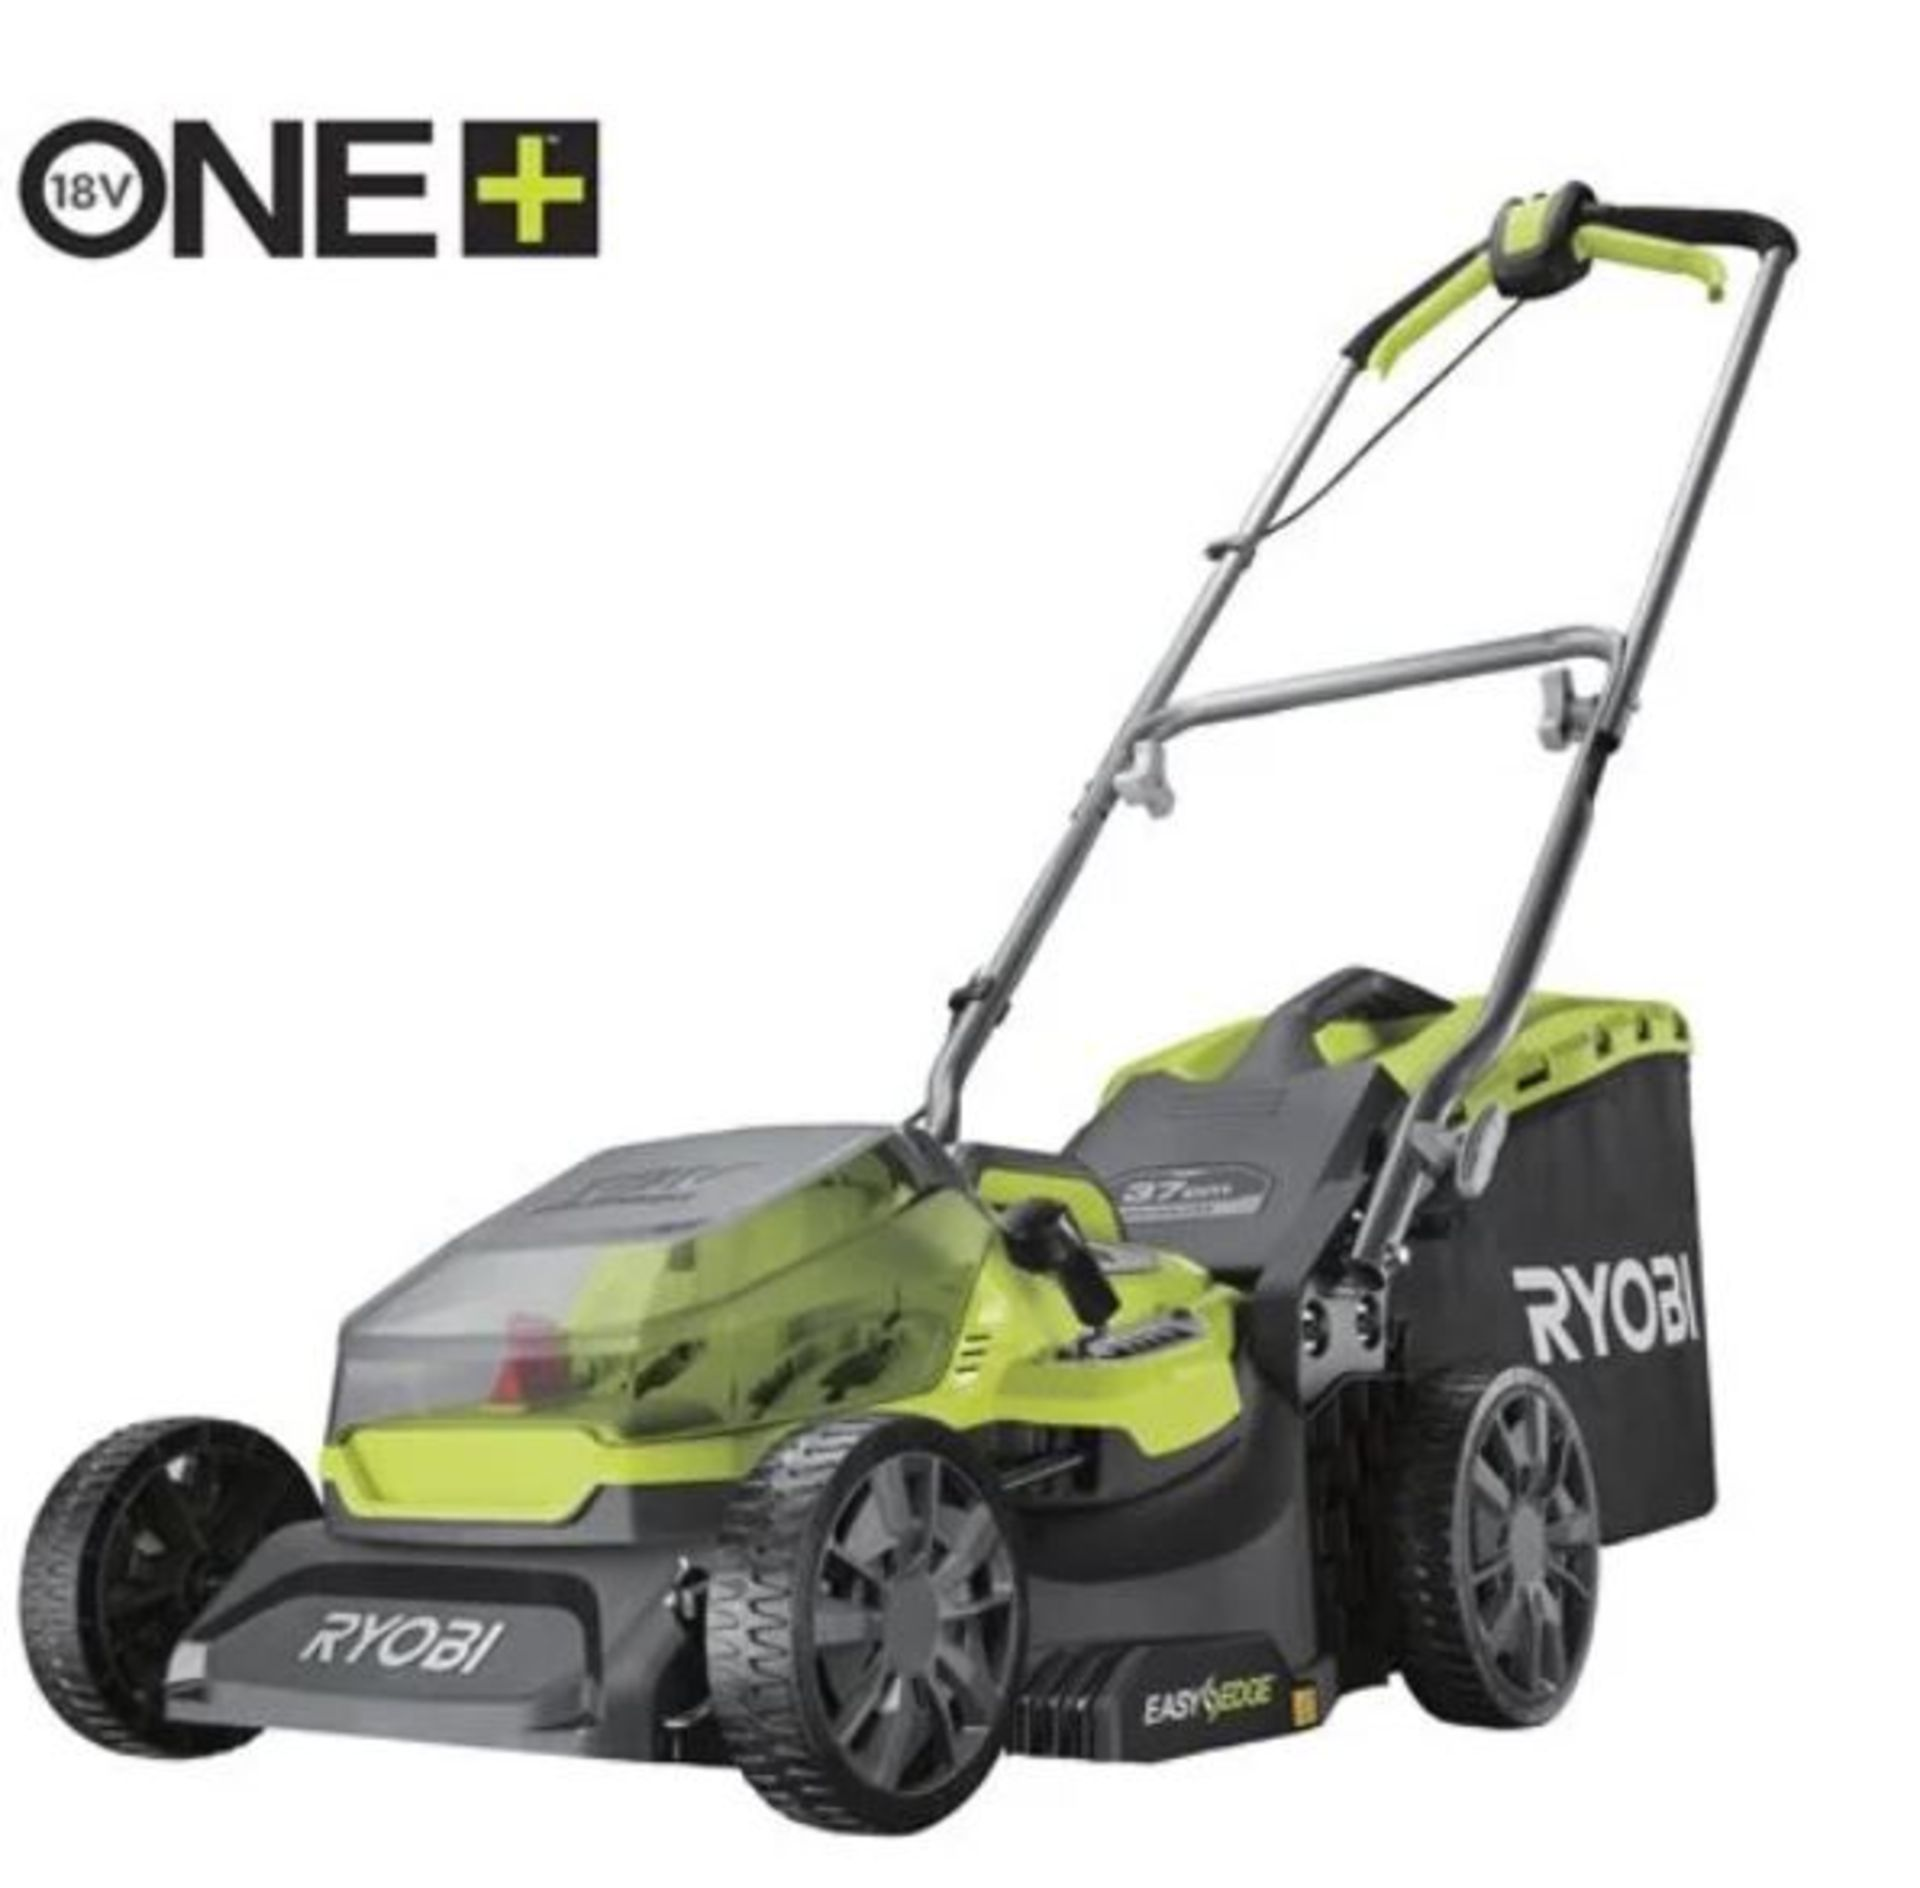 (P9) 2x Items. 1x Ryobi One + Cordless Lawnmower (No Battery Or Charger). 1x Sovereign 57cm Garden